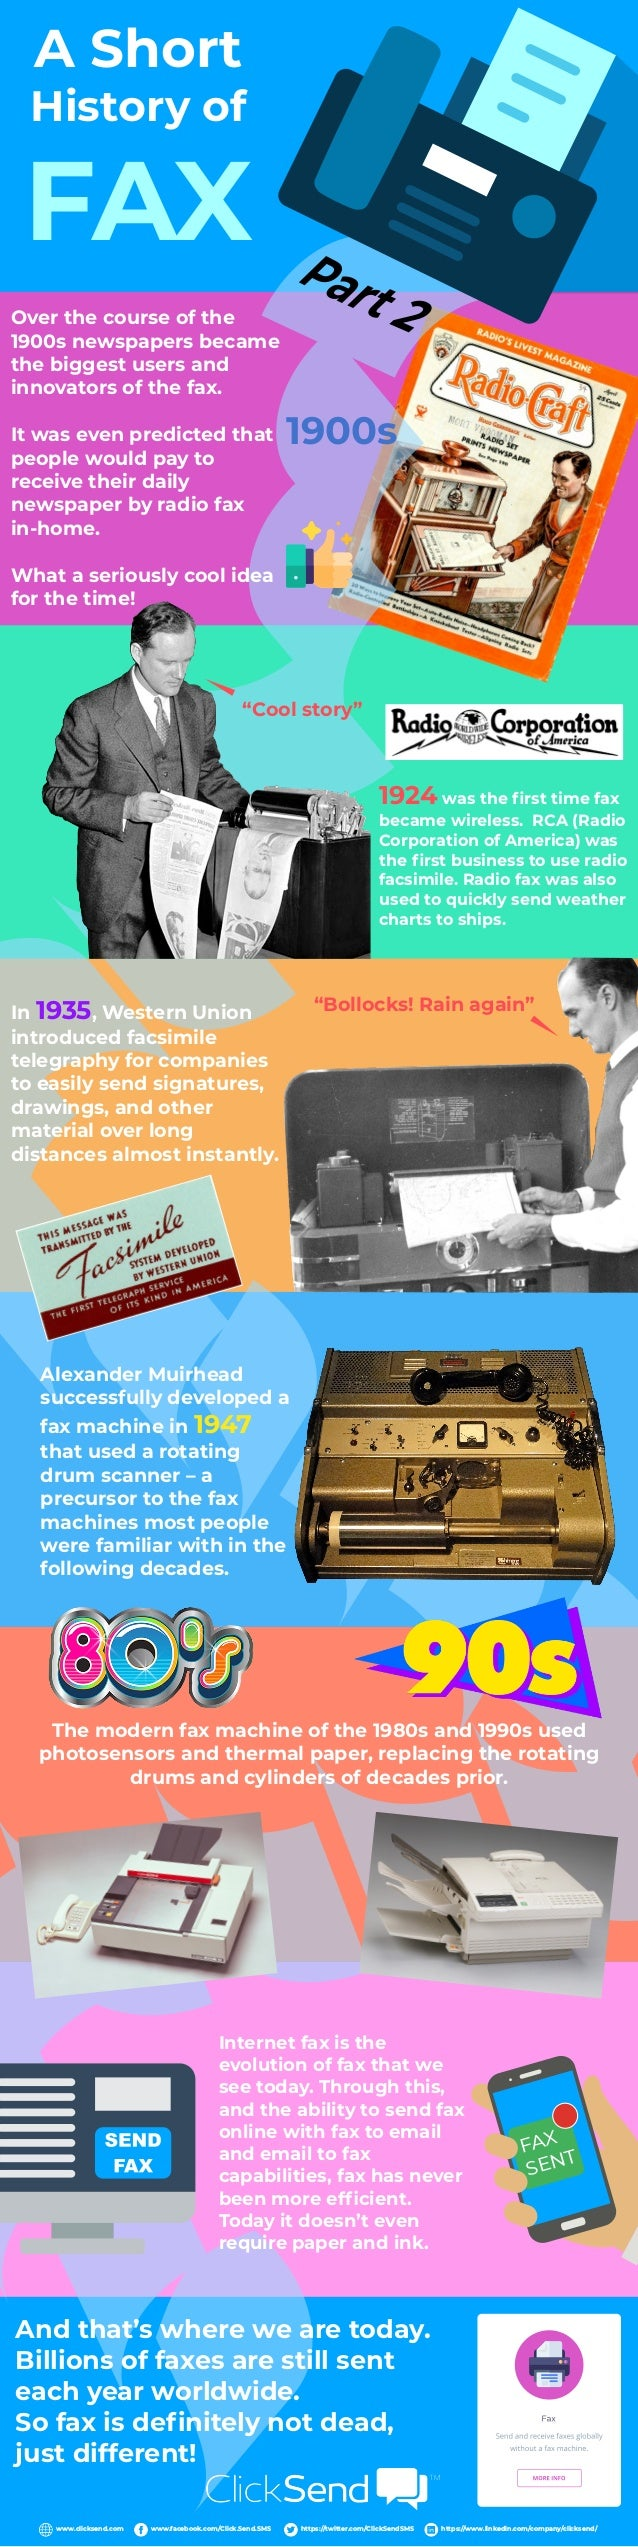 A Short History of FAX Alexander Muirhead successfully developed a fax machine in 1947 that used a rotating drum scanner –...